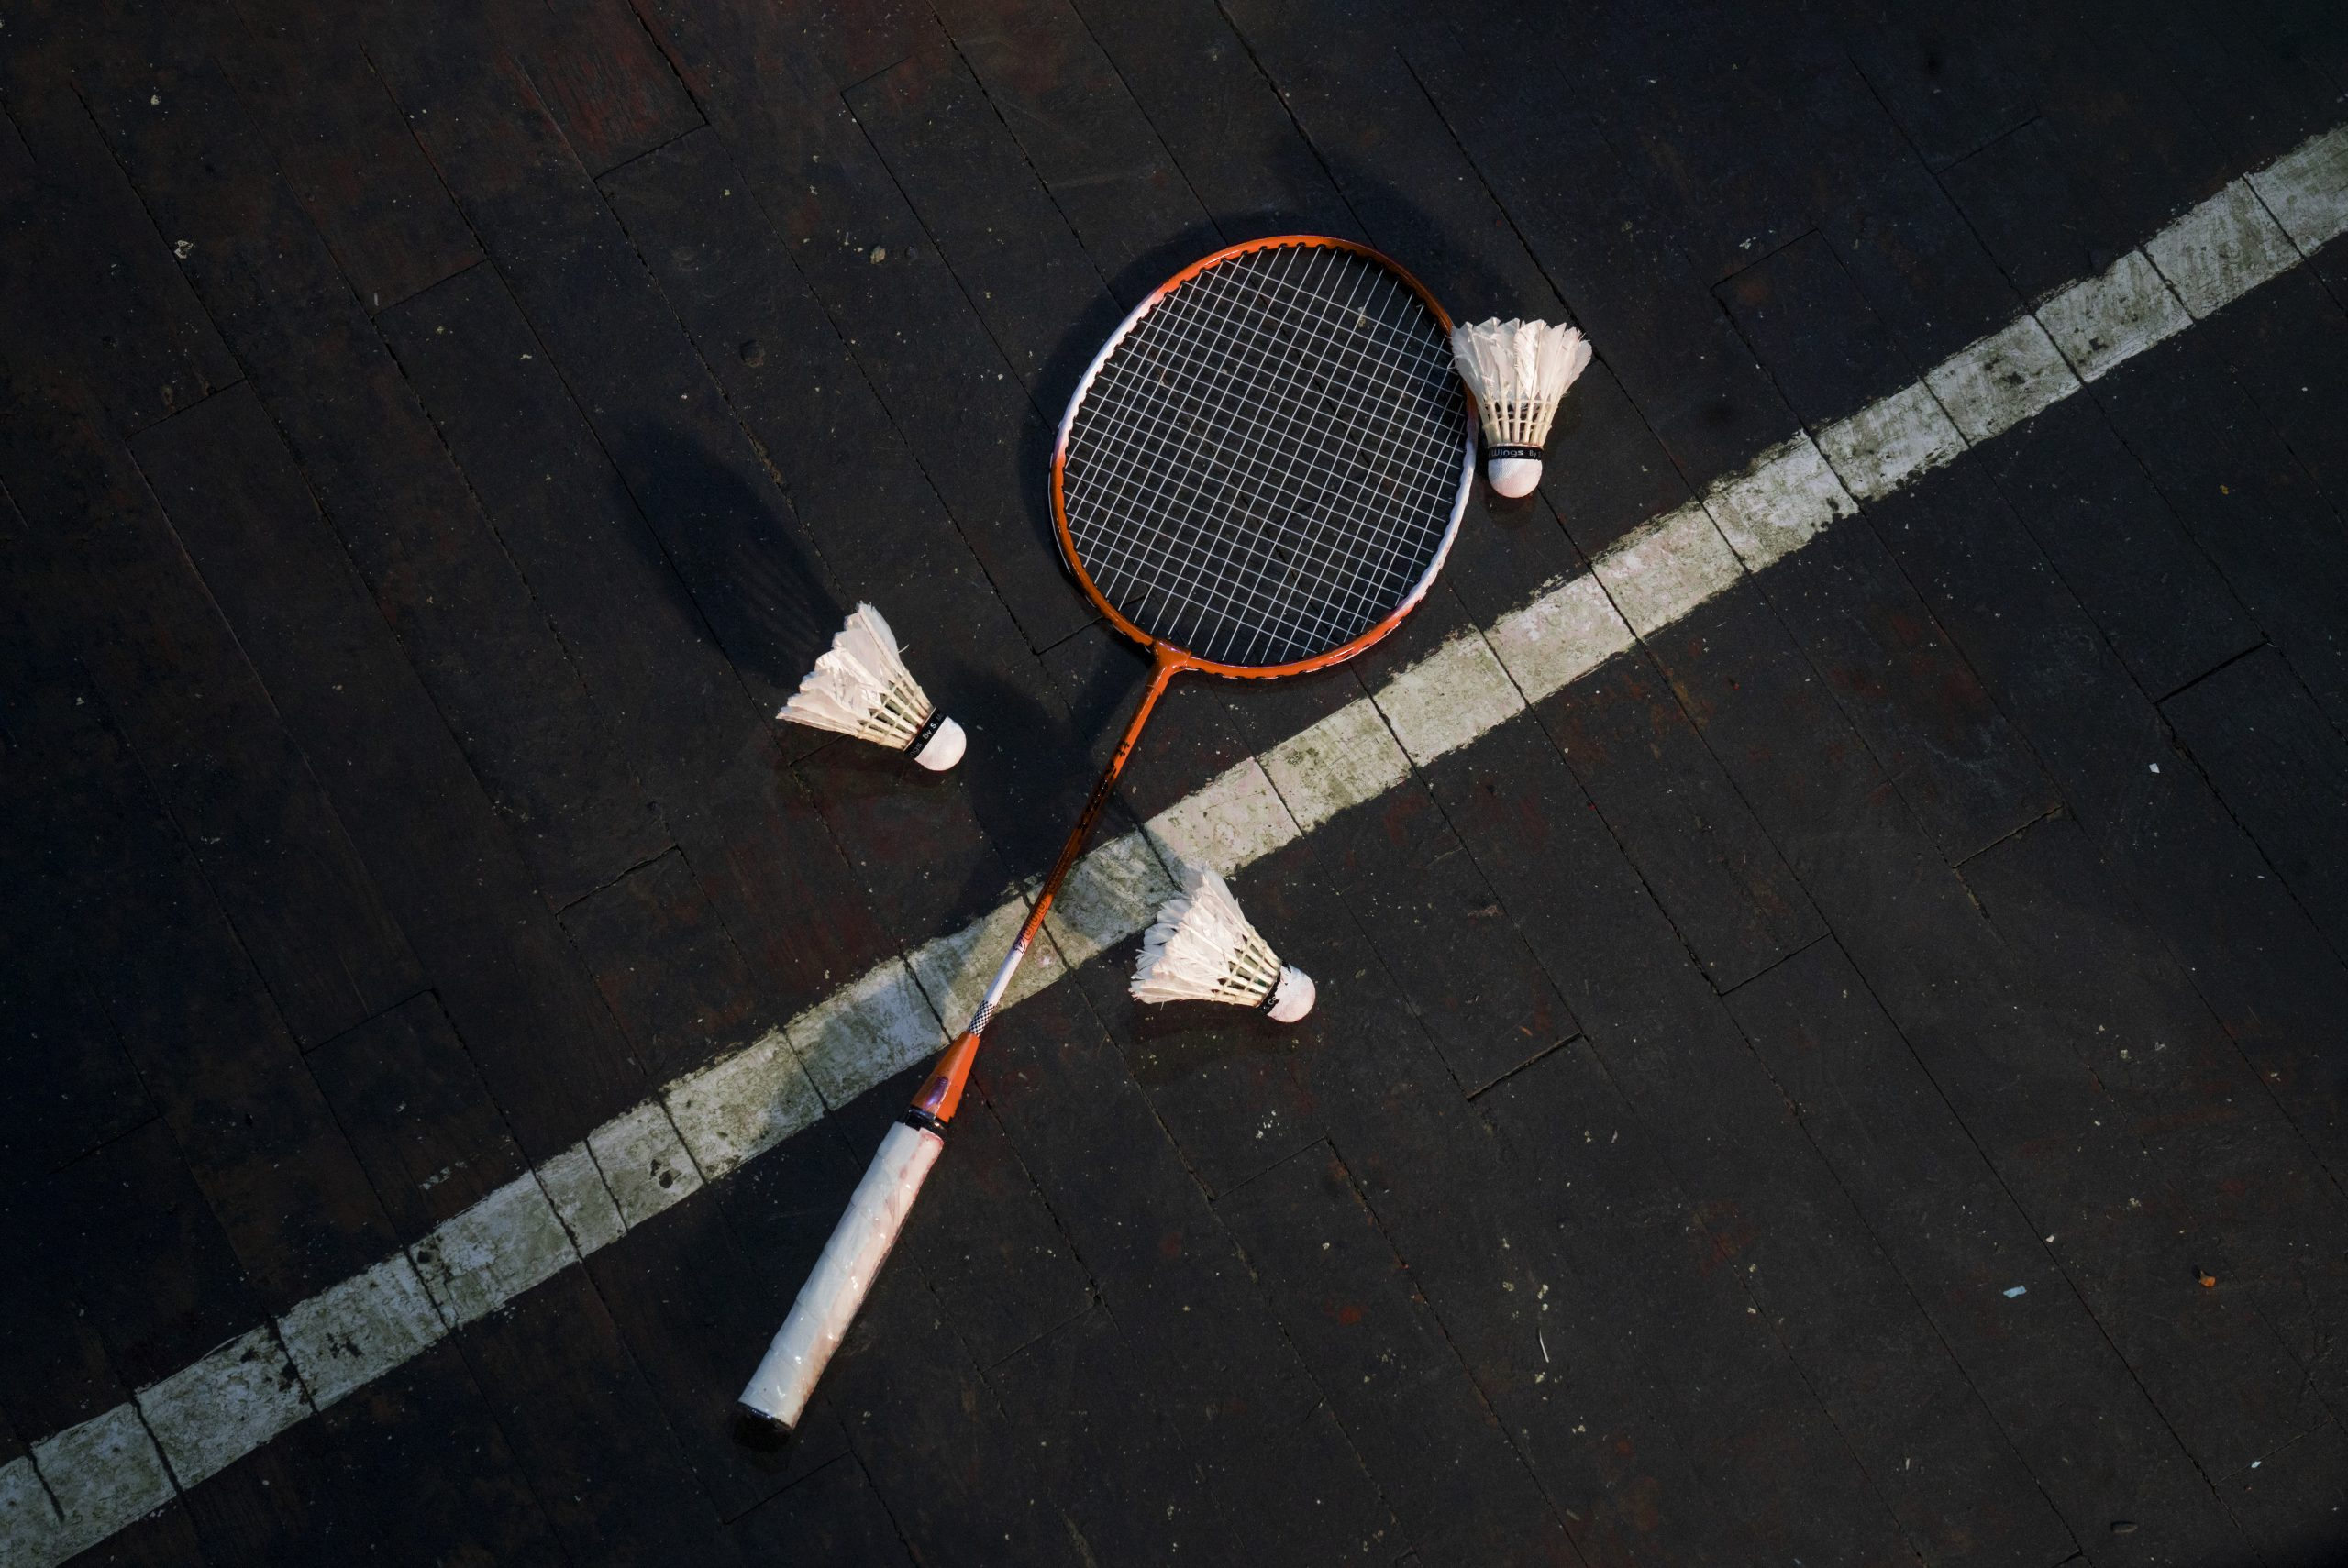 Badminton equipment on the ground